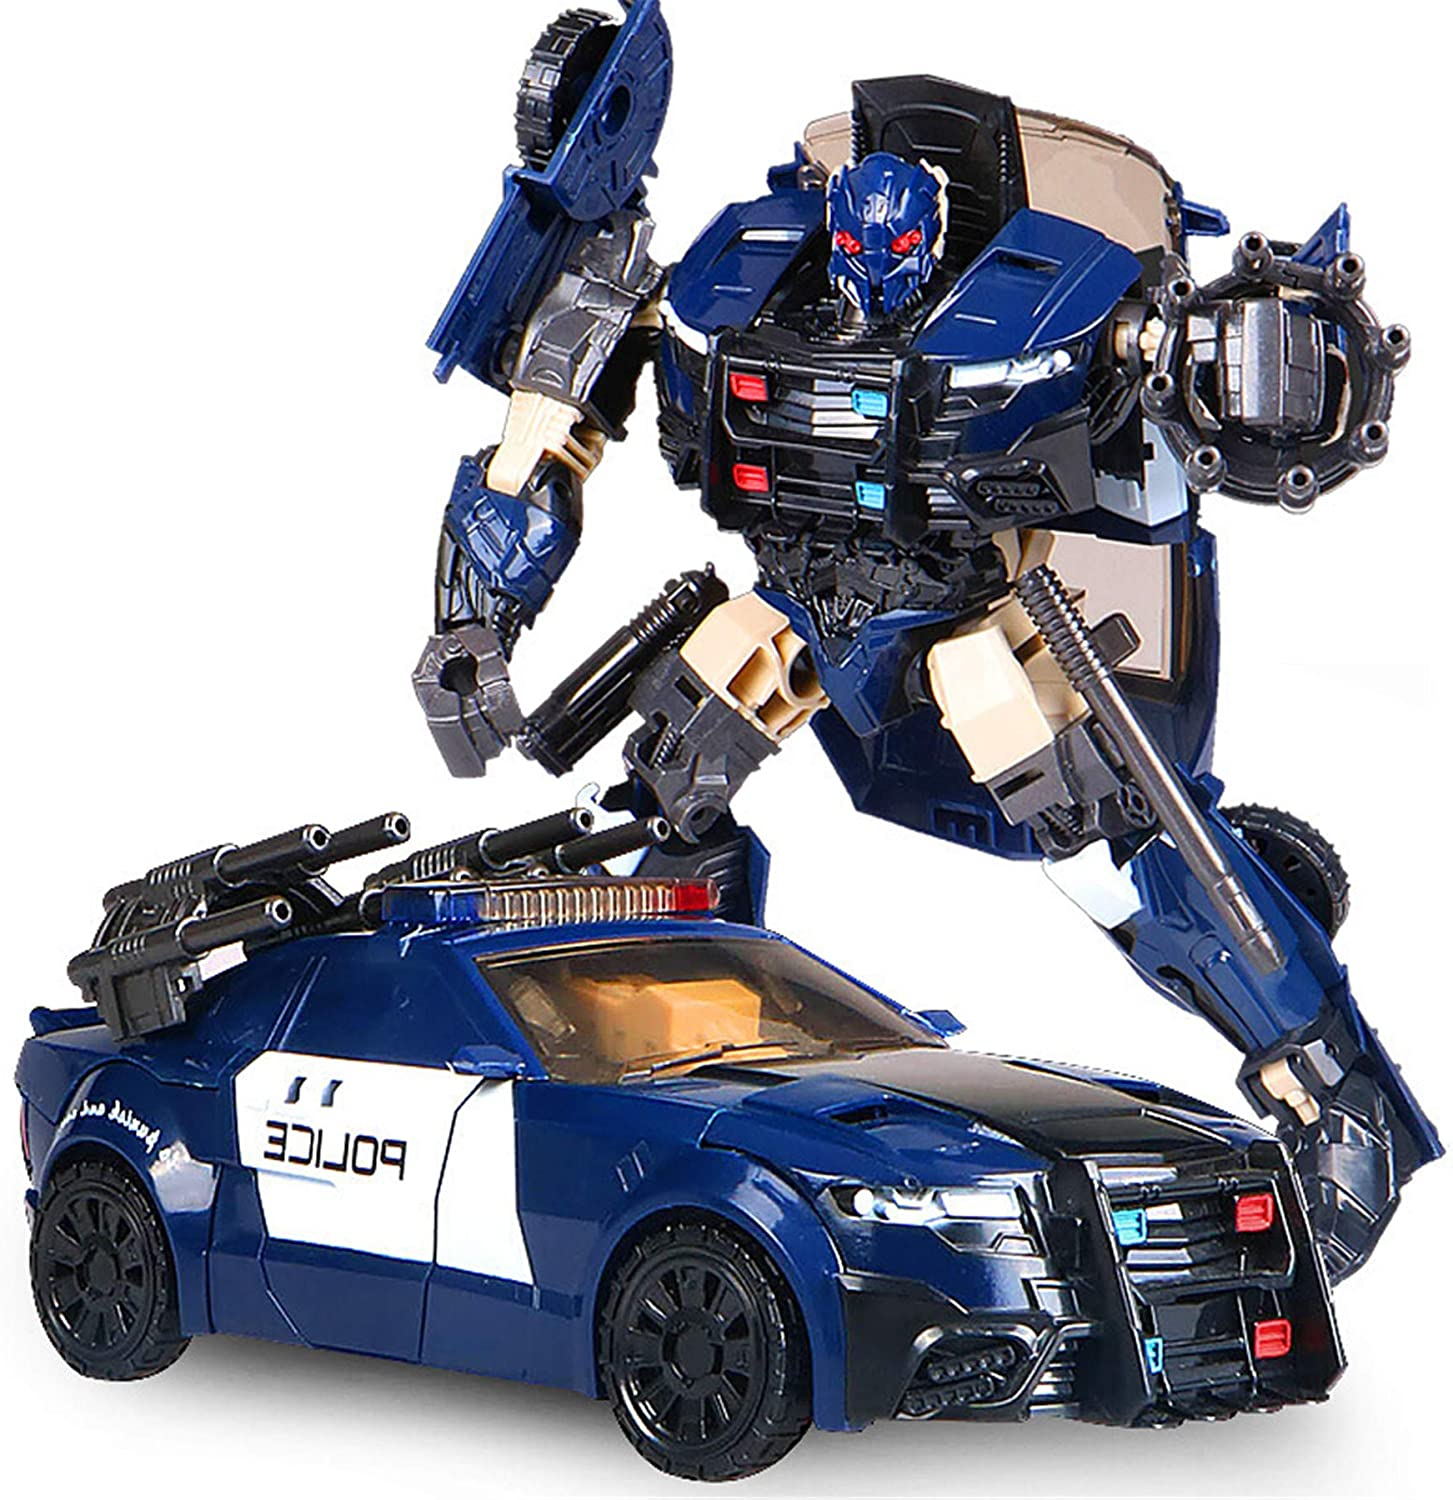 Pieceng Store Transformers Toys Studio Series Voyager Class Movie Decepticons Megatron Action Figure (7.8 inch),Kids for Aged 6 Up